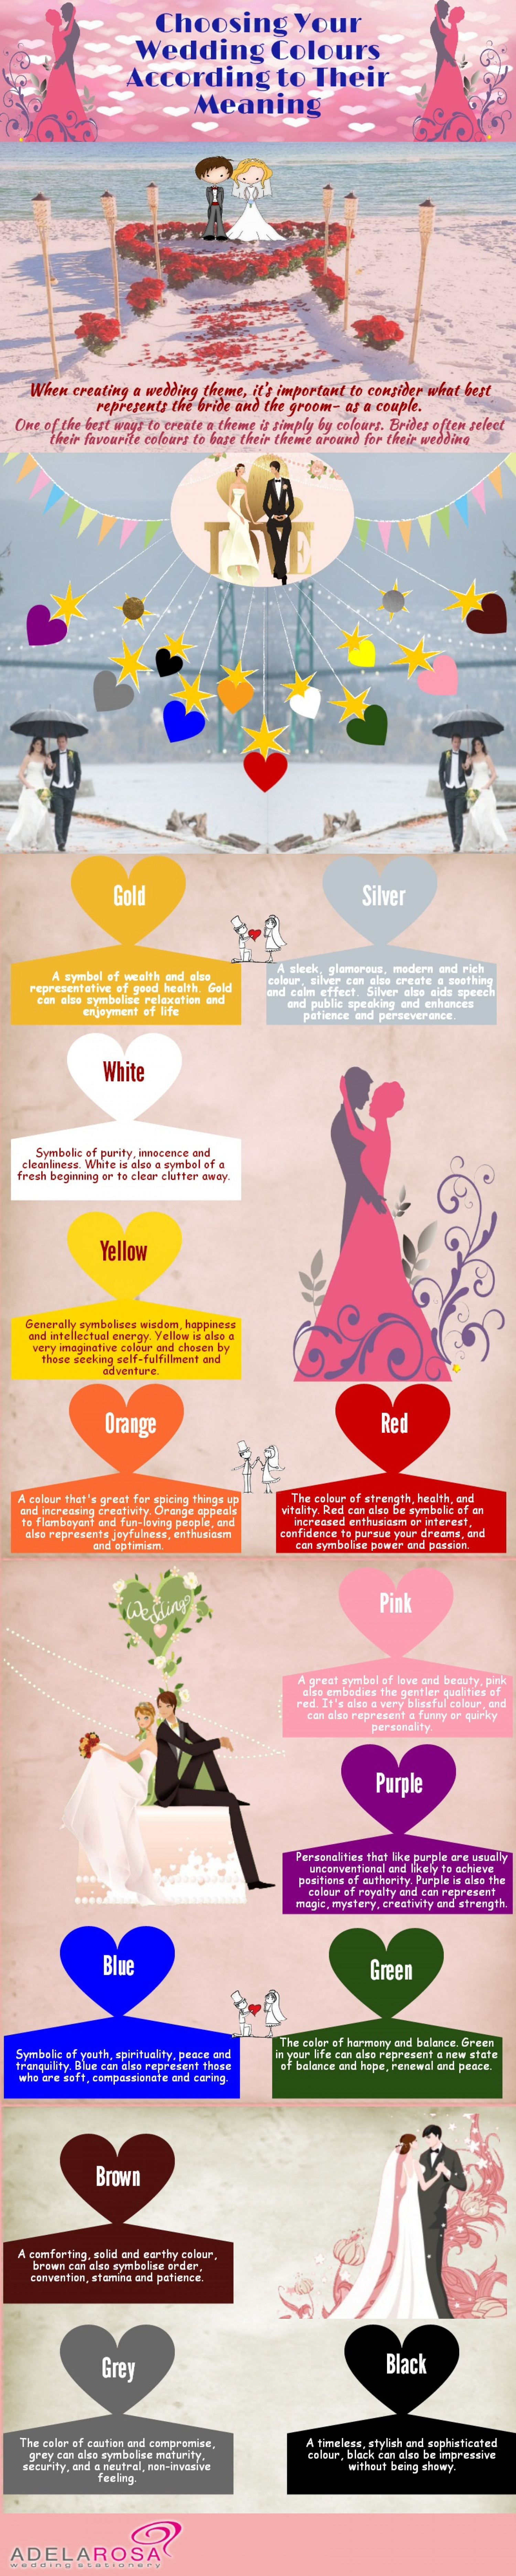 Choosing Your Wedding Colours According To Their Meaning Infographic